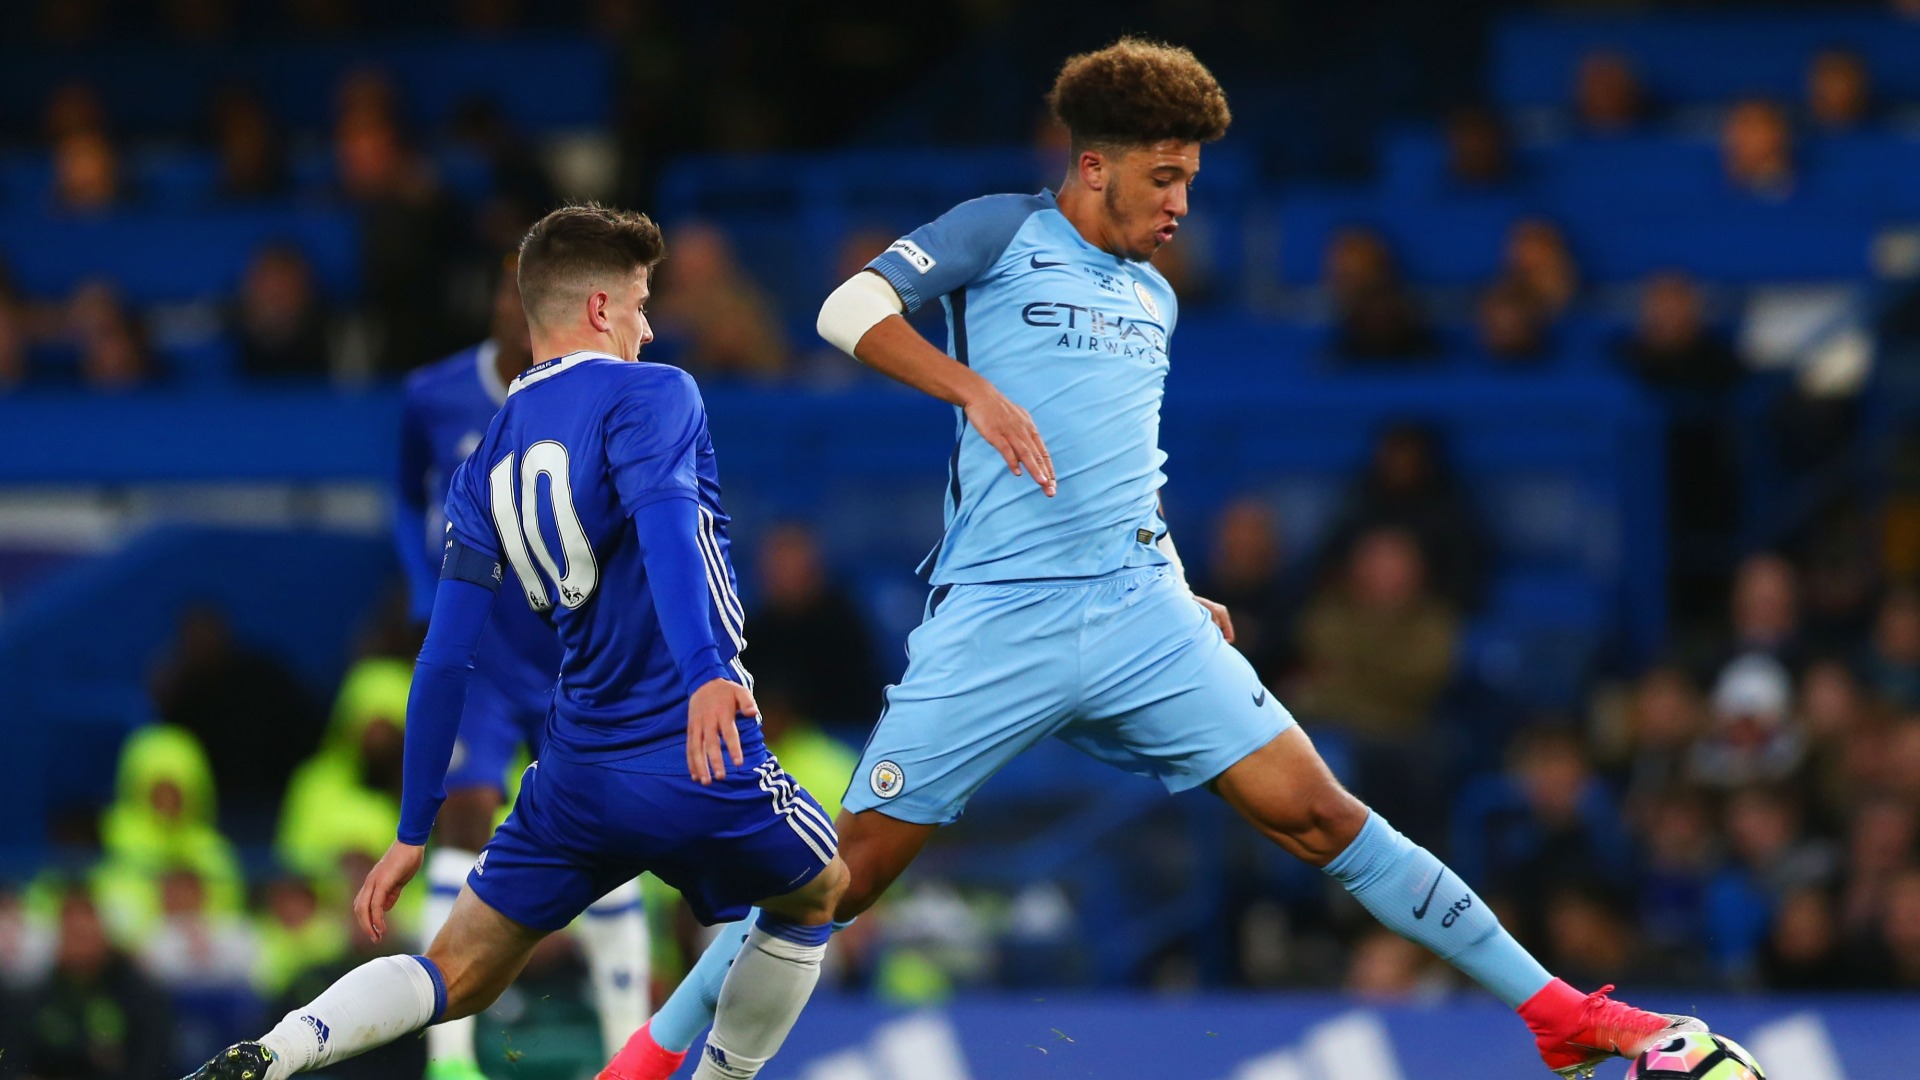 Sancho didn't want to be here - Guardiola rules out re-signing winger